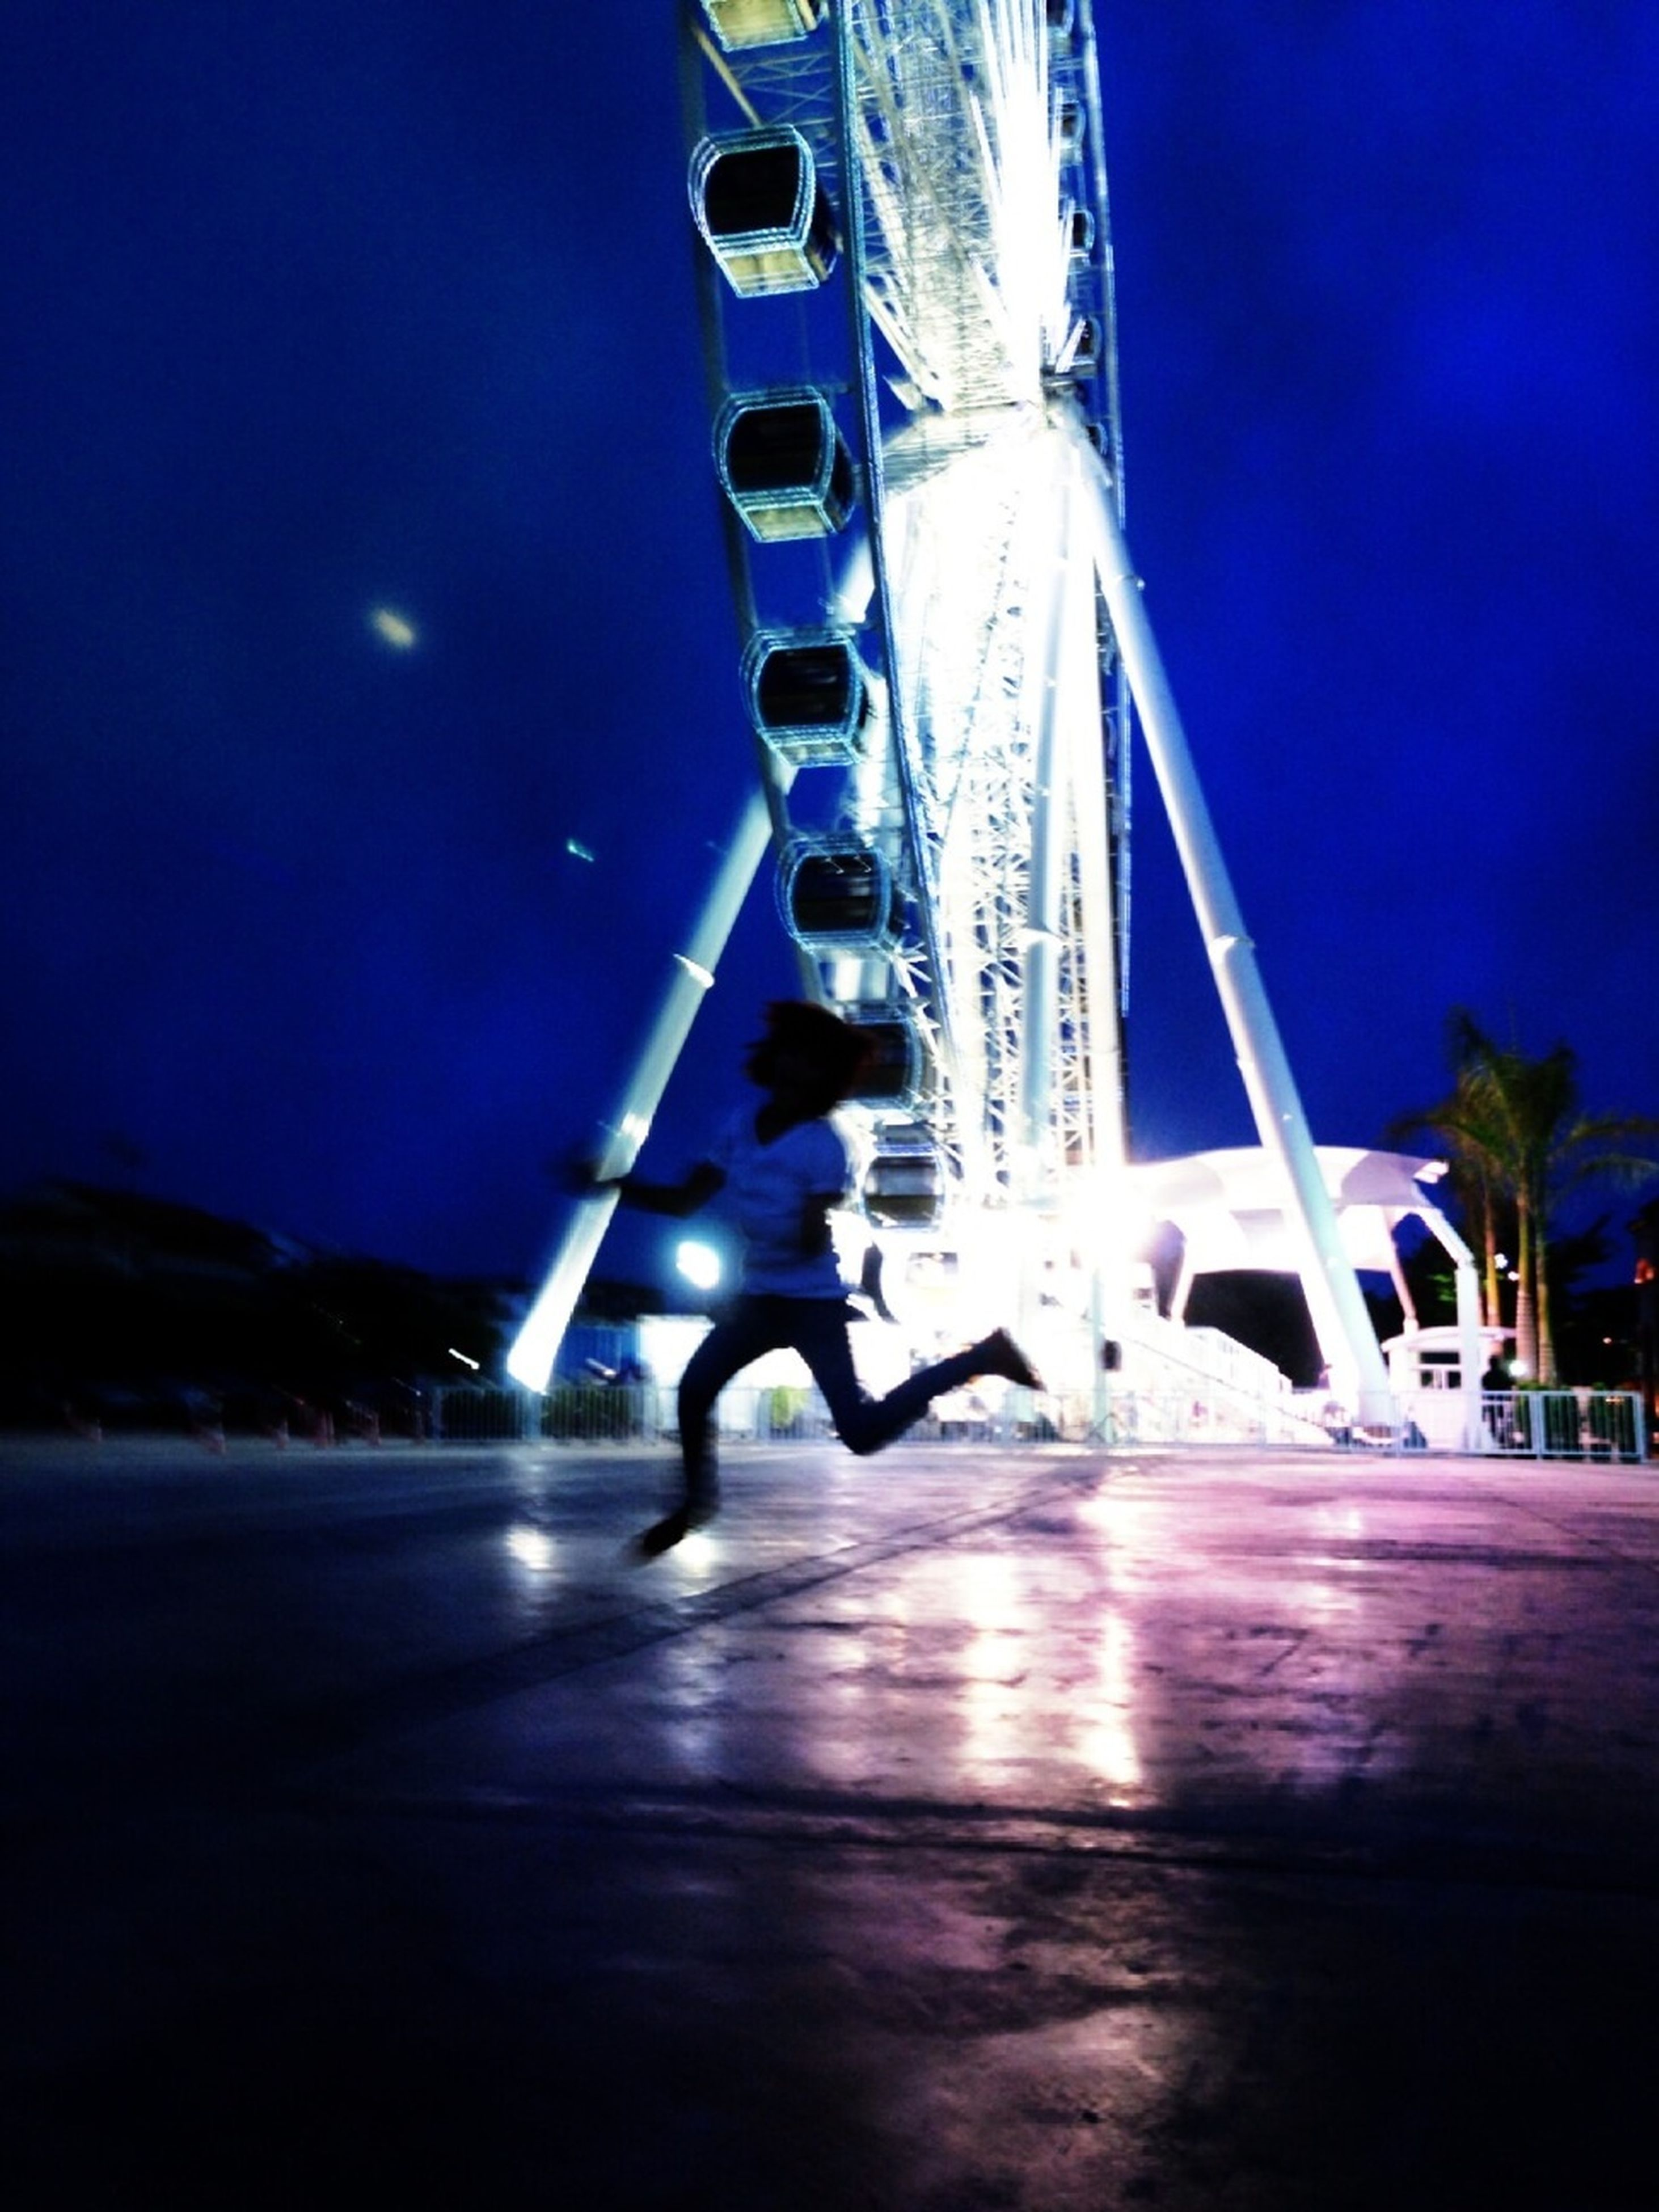 transportation, bridge - man made structure, mode of transport, blue, night, clear sky, connection, illuminated, engineering, bridge, river, sky, built structure, nautical vessel, arts culture and entertainment, travel, outdoors, water, amusement park, architecture